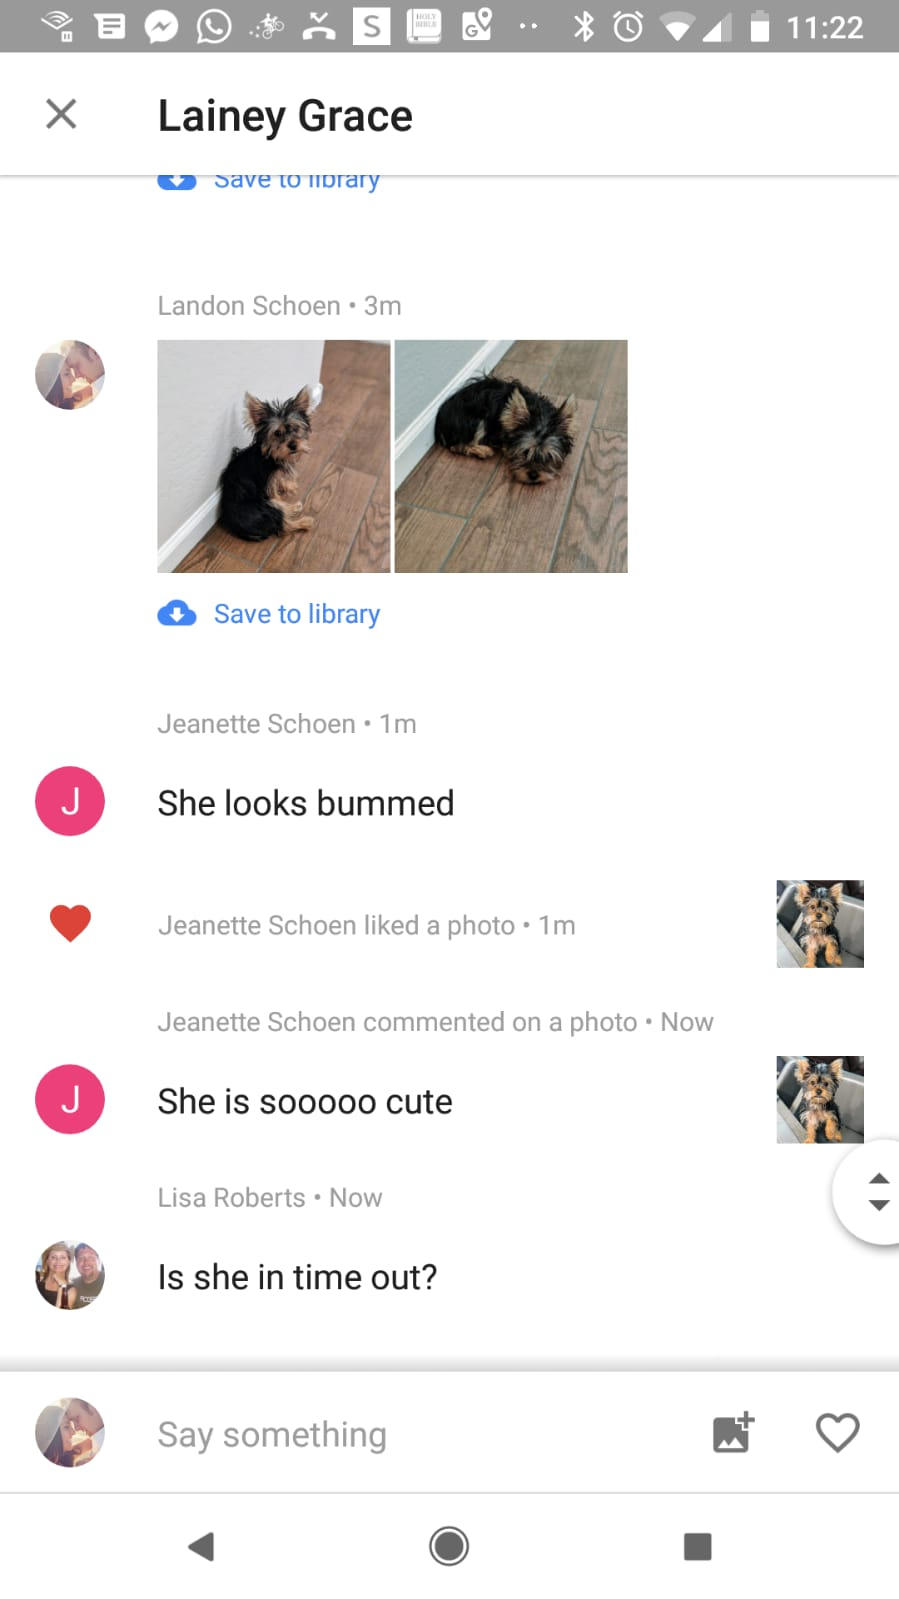 Can't see comments in my shared album - Google Photos Help